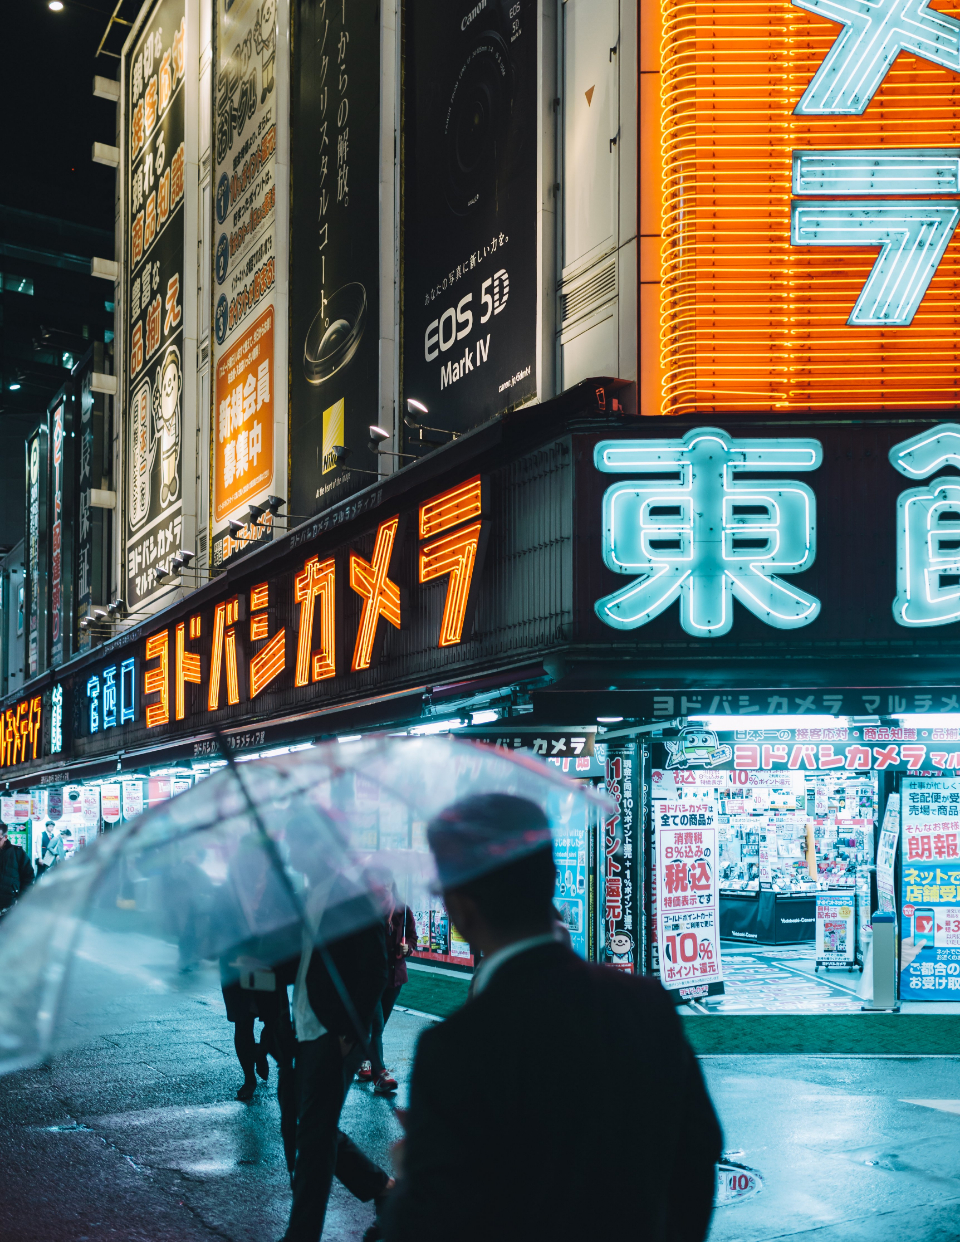 neon tokyo street signs people walking rain umbrella weather city busy night lights commute sidewalk stores